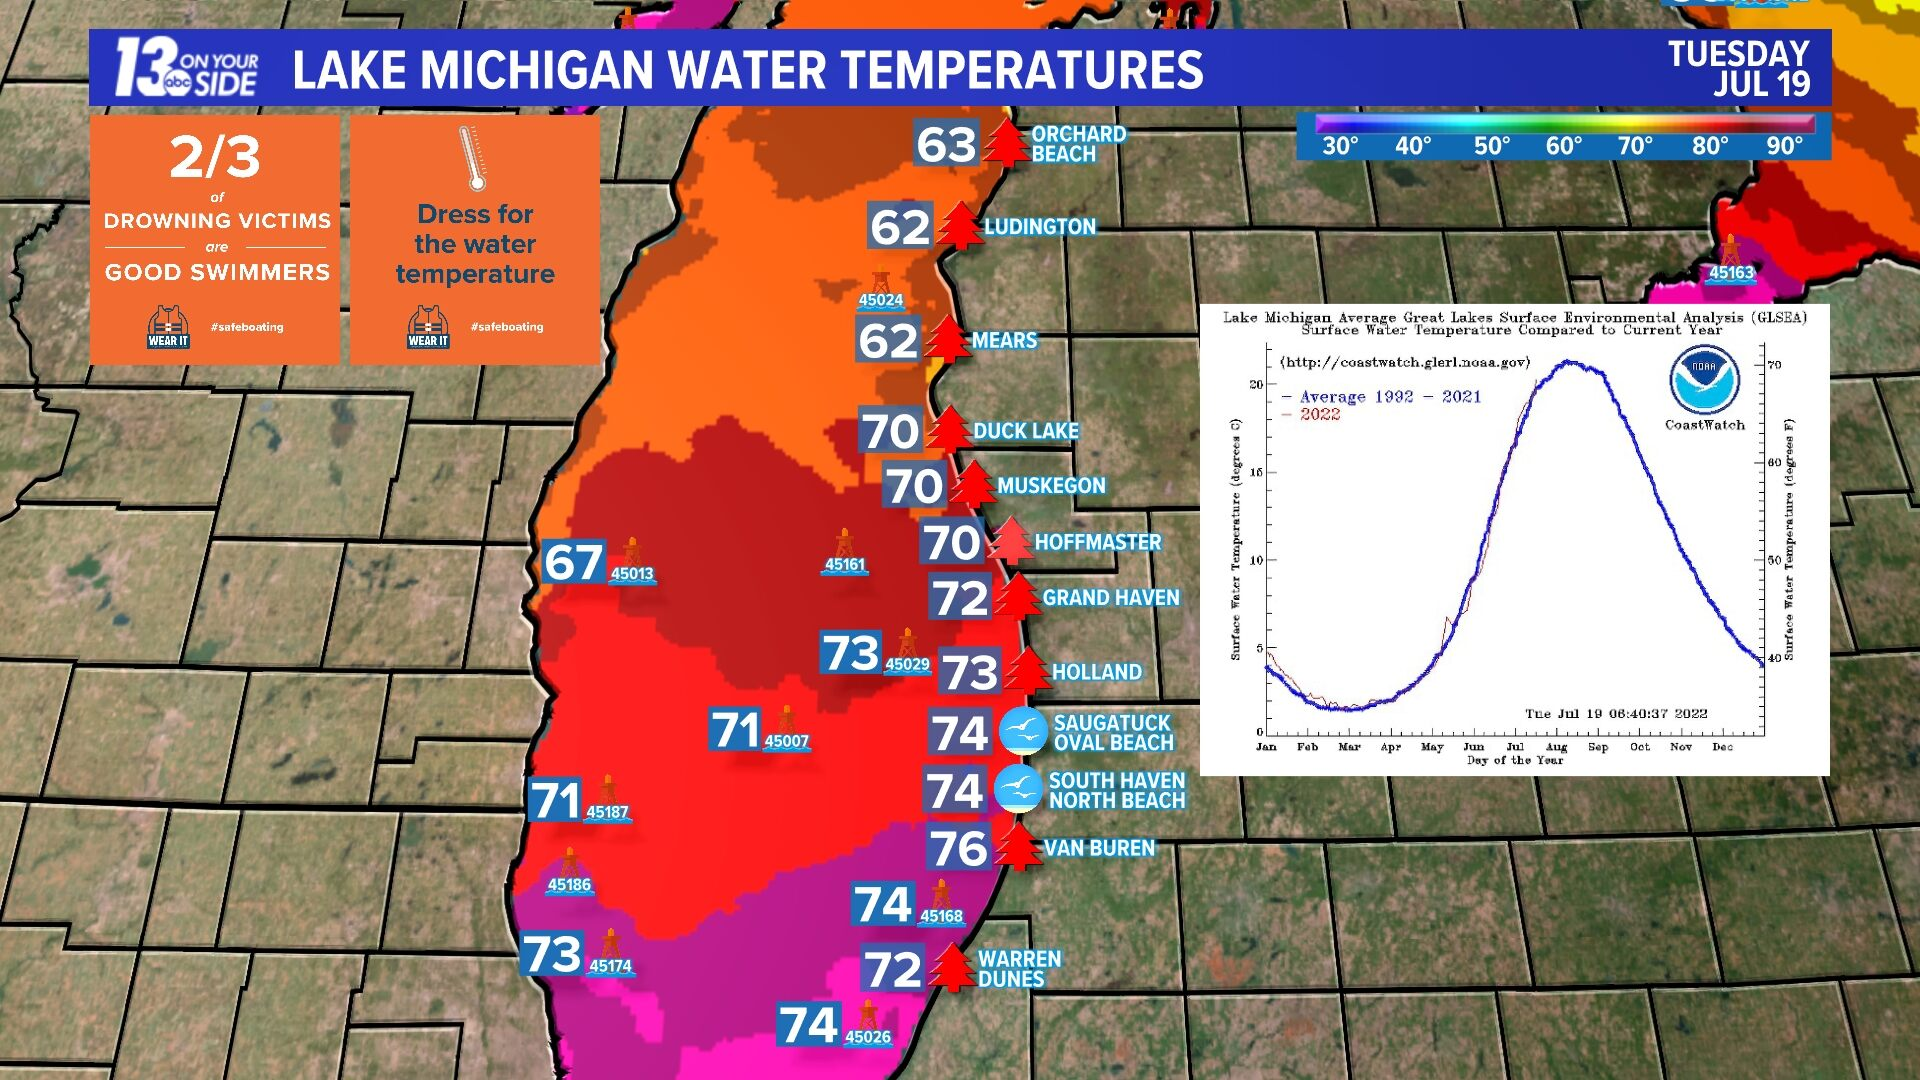 Lake Michigan Water Temperatures